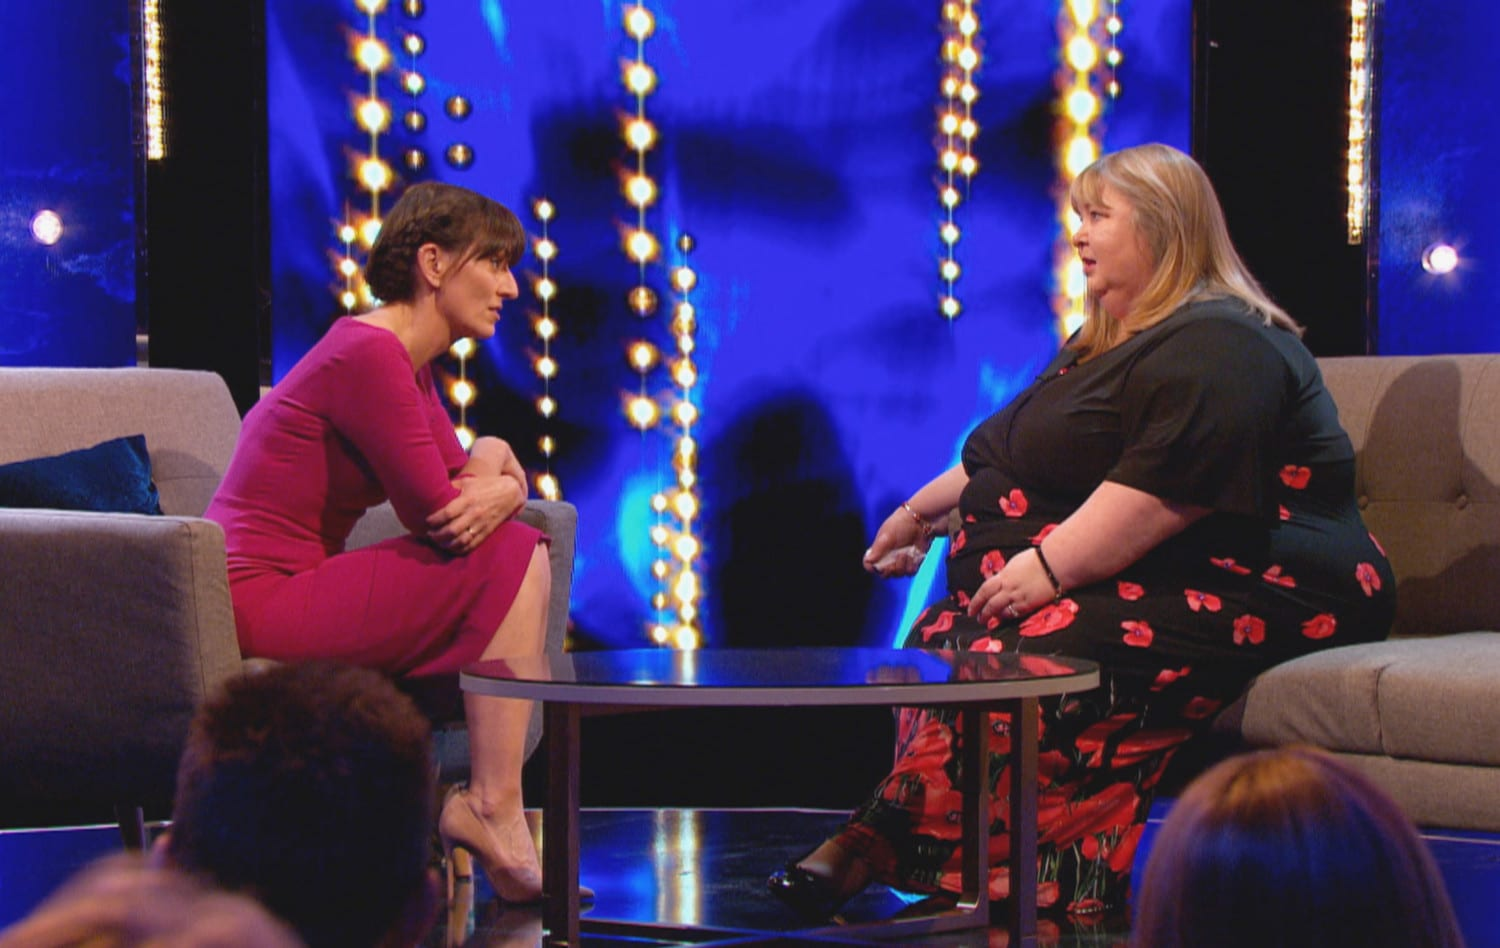 Host Davina McCall and contestant Tracey Geddis from Lurgan